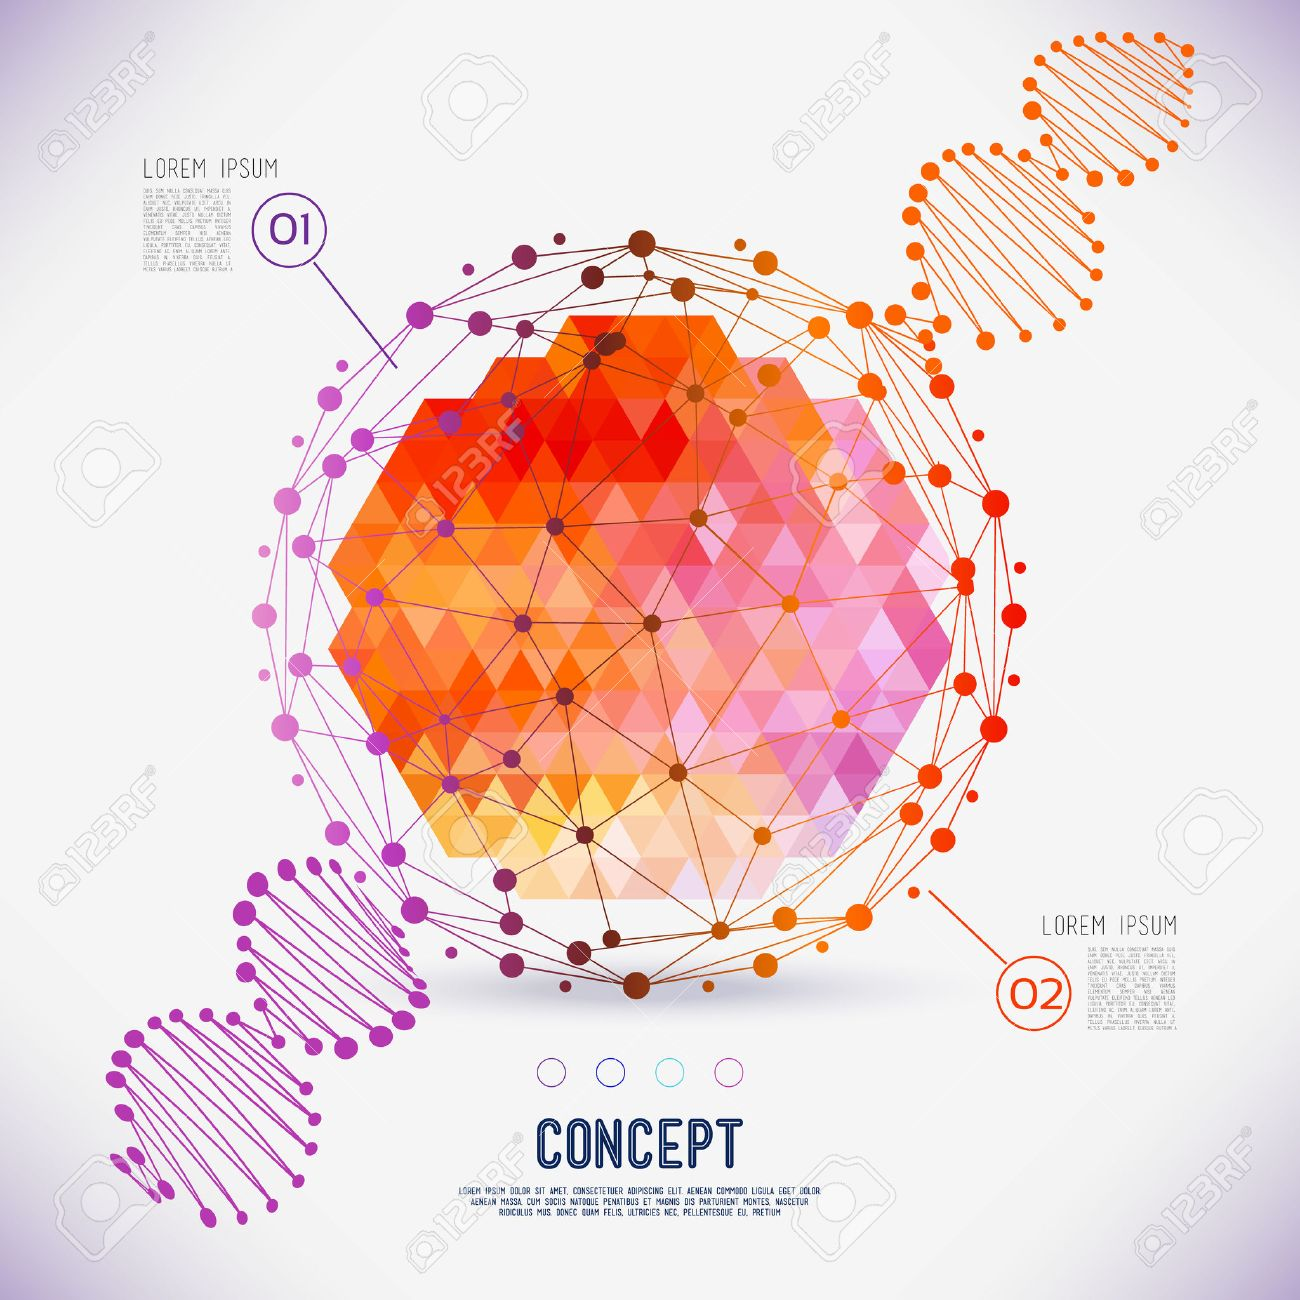 Abstract concept geometric lattice, the scope of molecules, DNA chain. Round composition of the molecular lattice with geometrical figure in the middle. Color composition vector for your design. - 41912164